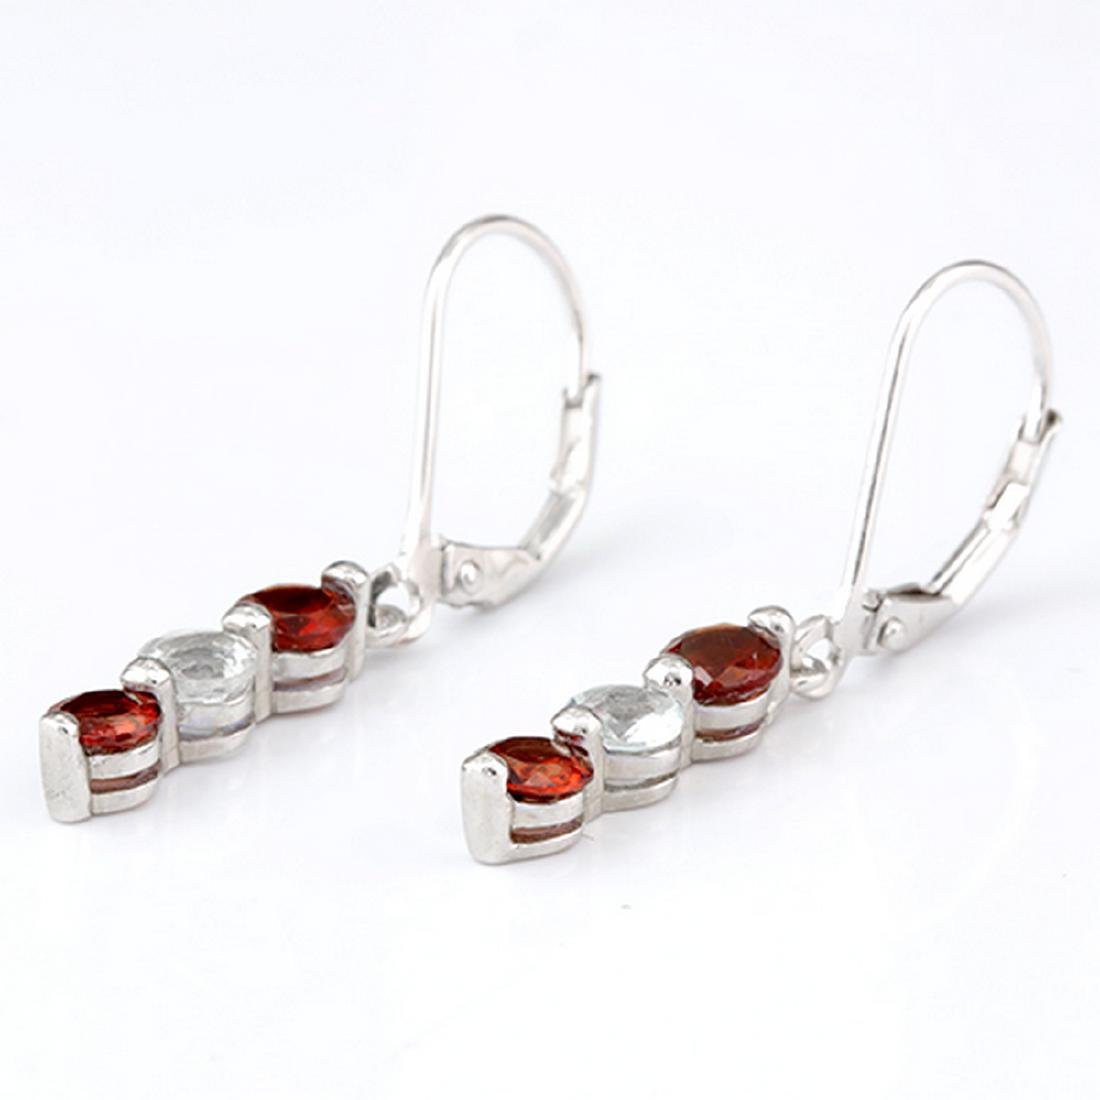 Garnet and Aquamarine Dangle Sterling Silver Earrings - 2